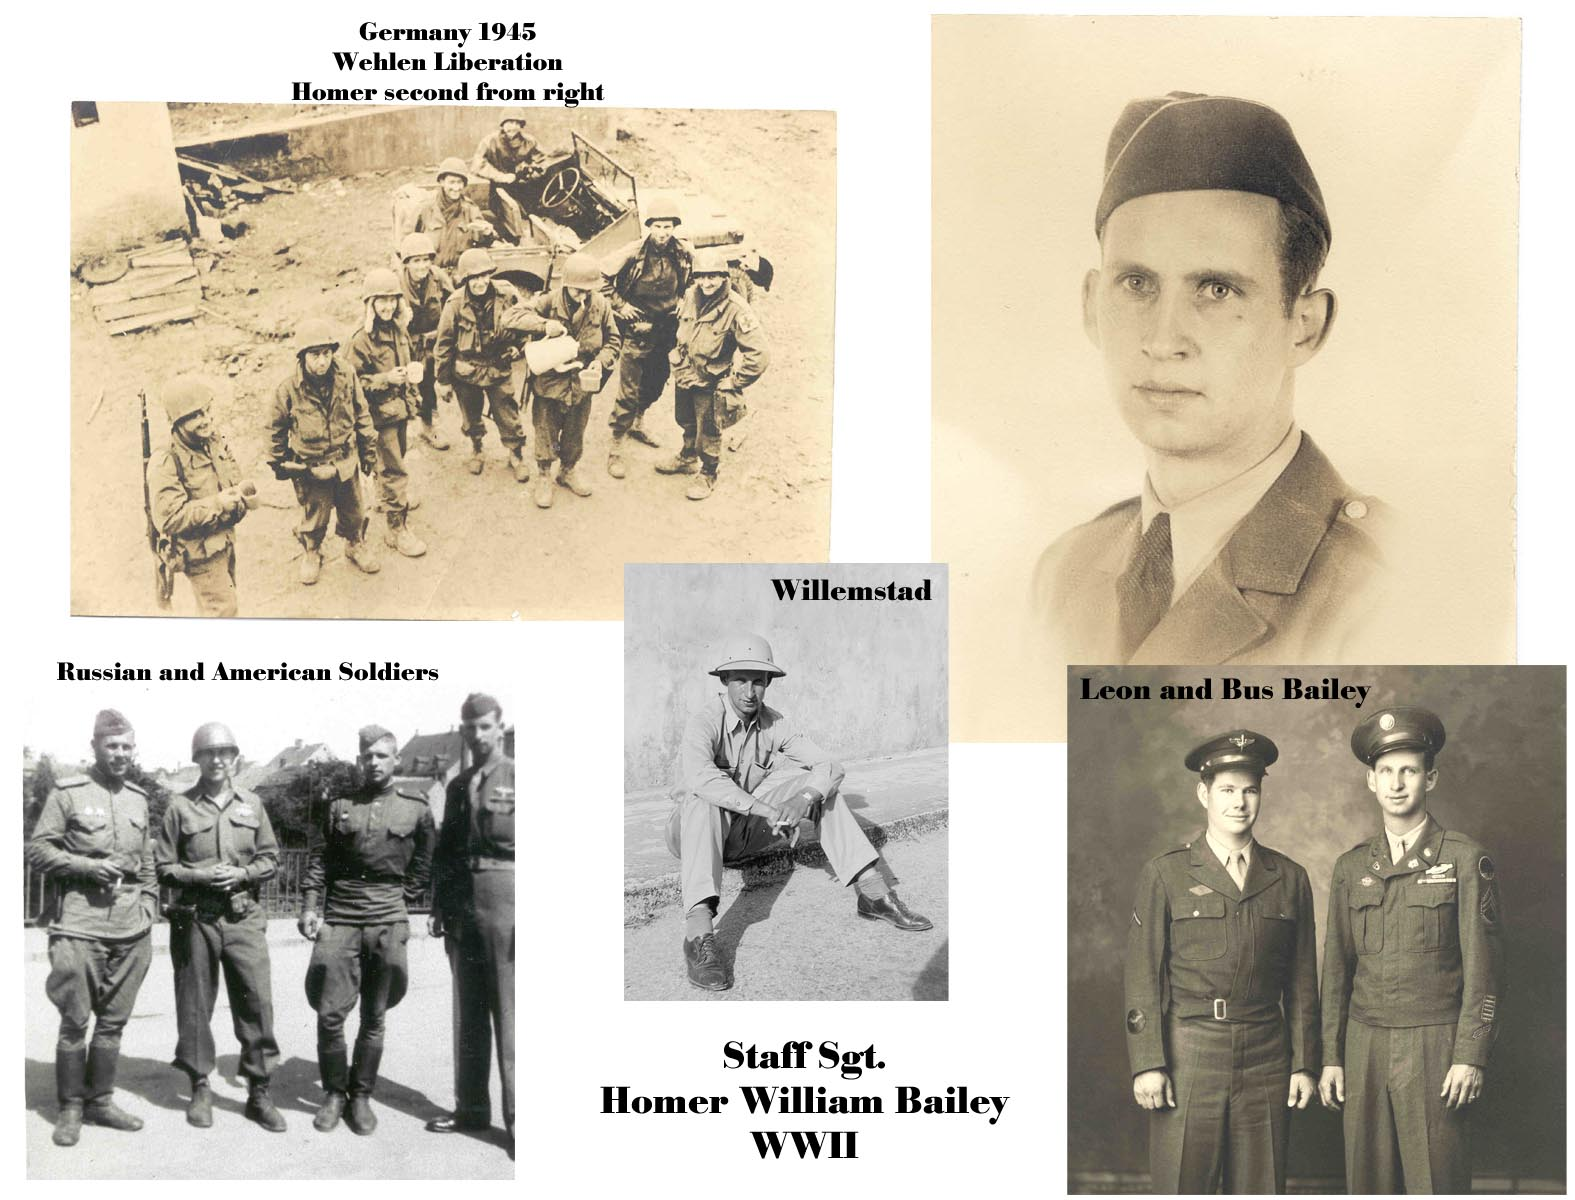 ... family businesses the gallery bailey home page family chart henry home